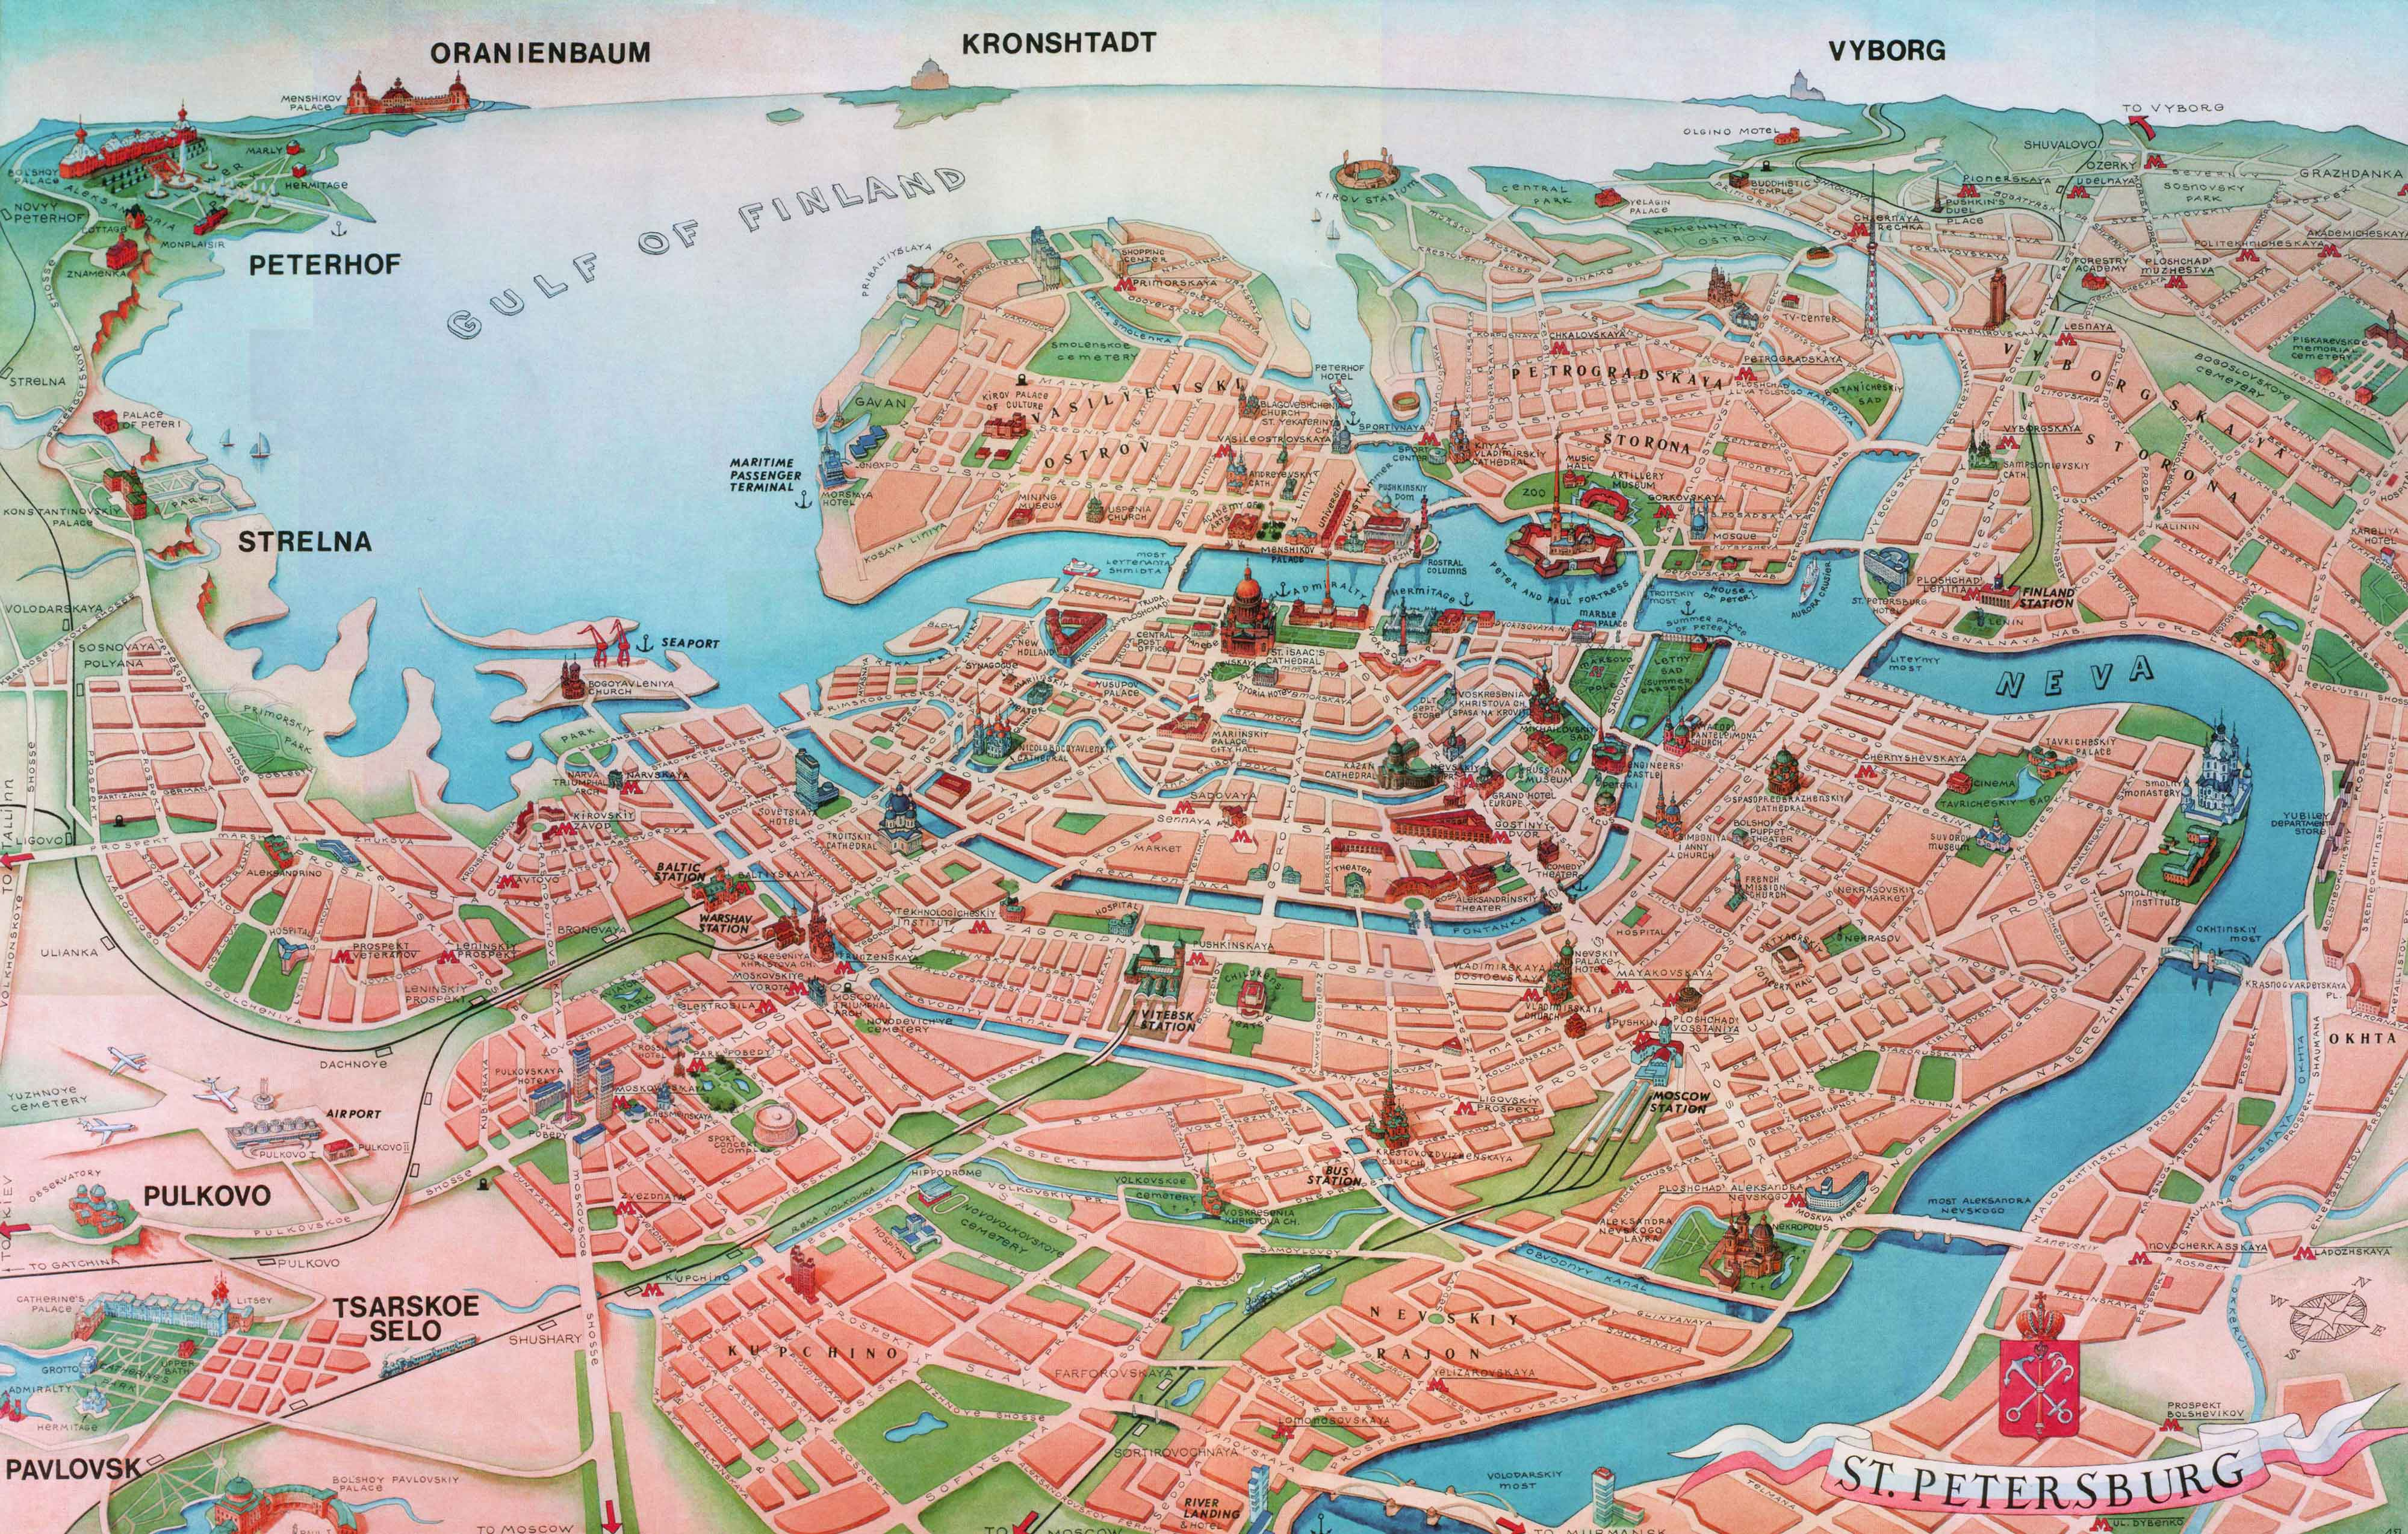 st petersburg tourist attractions map Travel Around The World – Map Of Barcelona Tourist Attractions